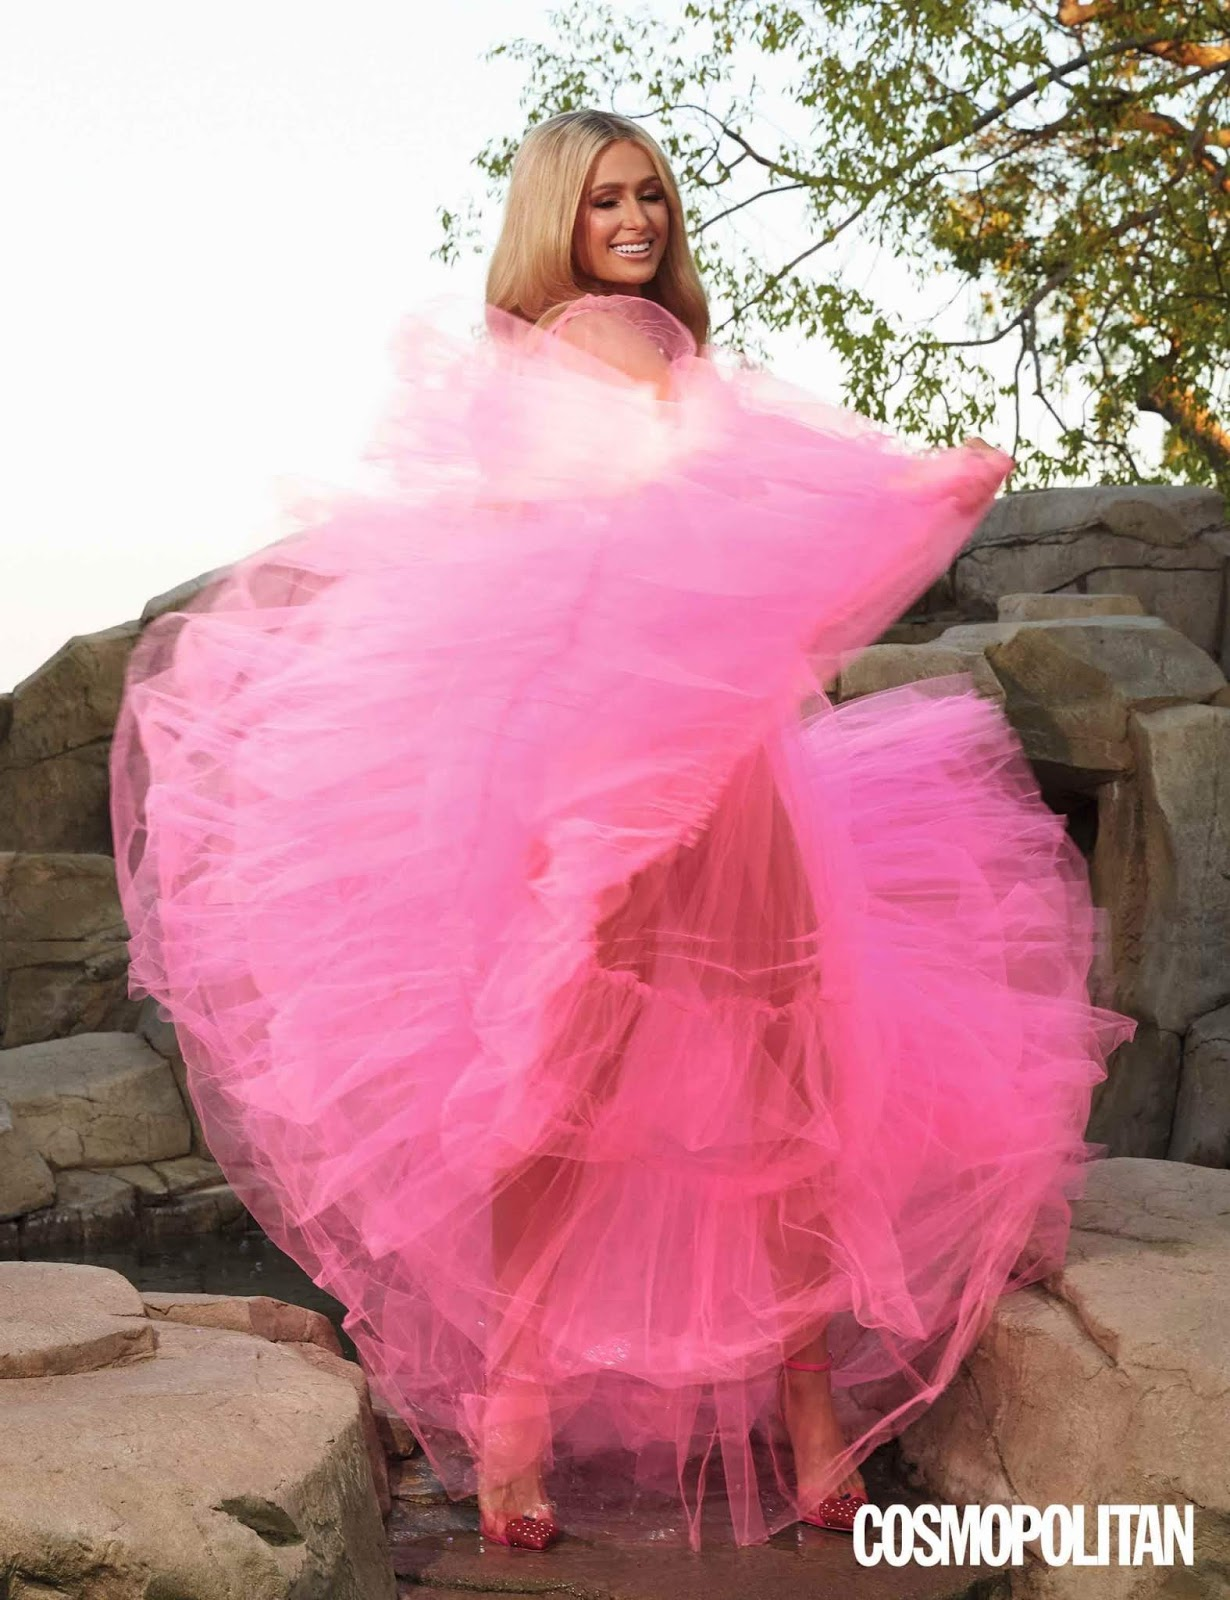 The socialite poses in a stunning ruffled pink gown